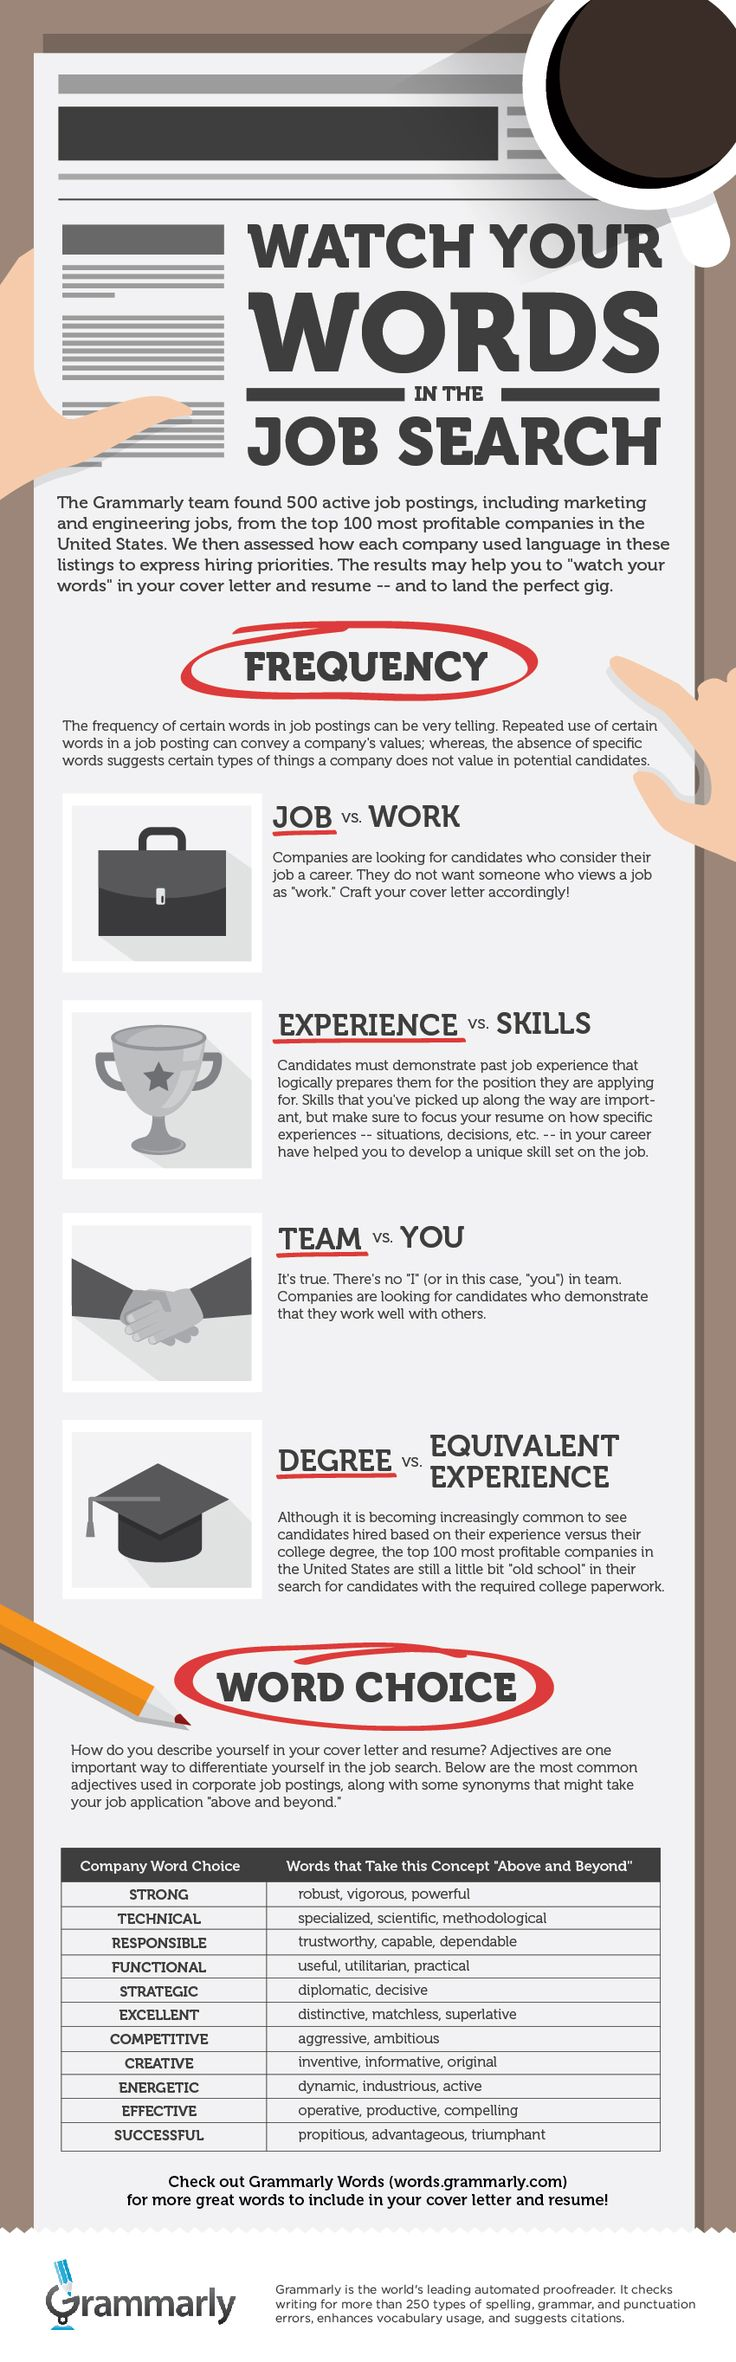 101 Best Images About Joining The Workforce On Pinterest Career